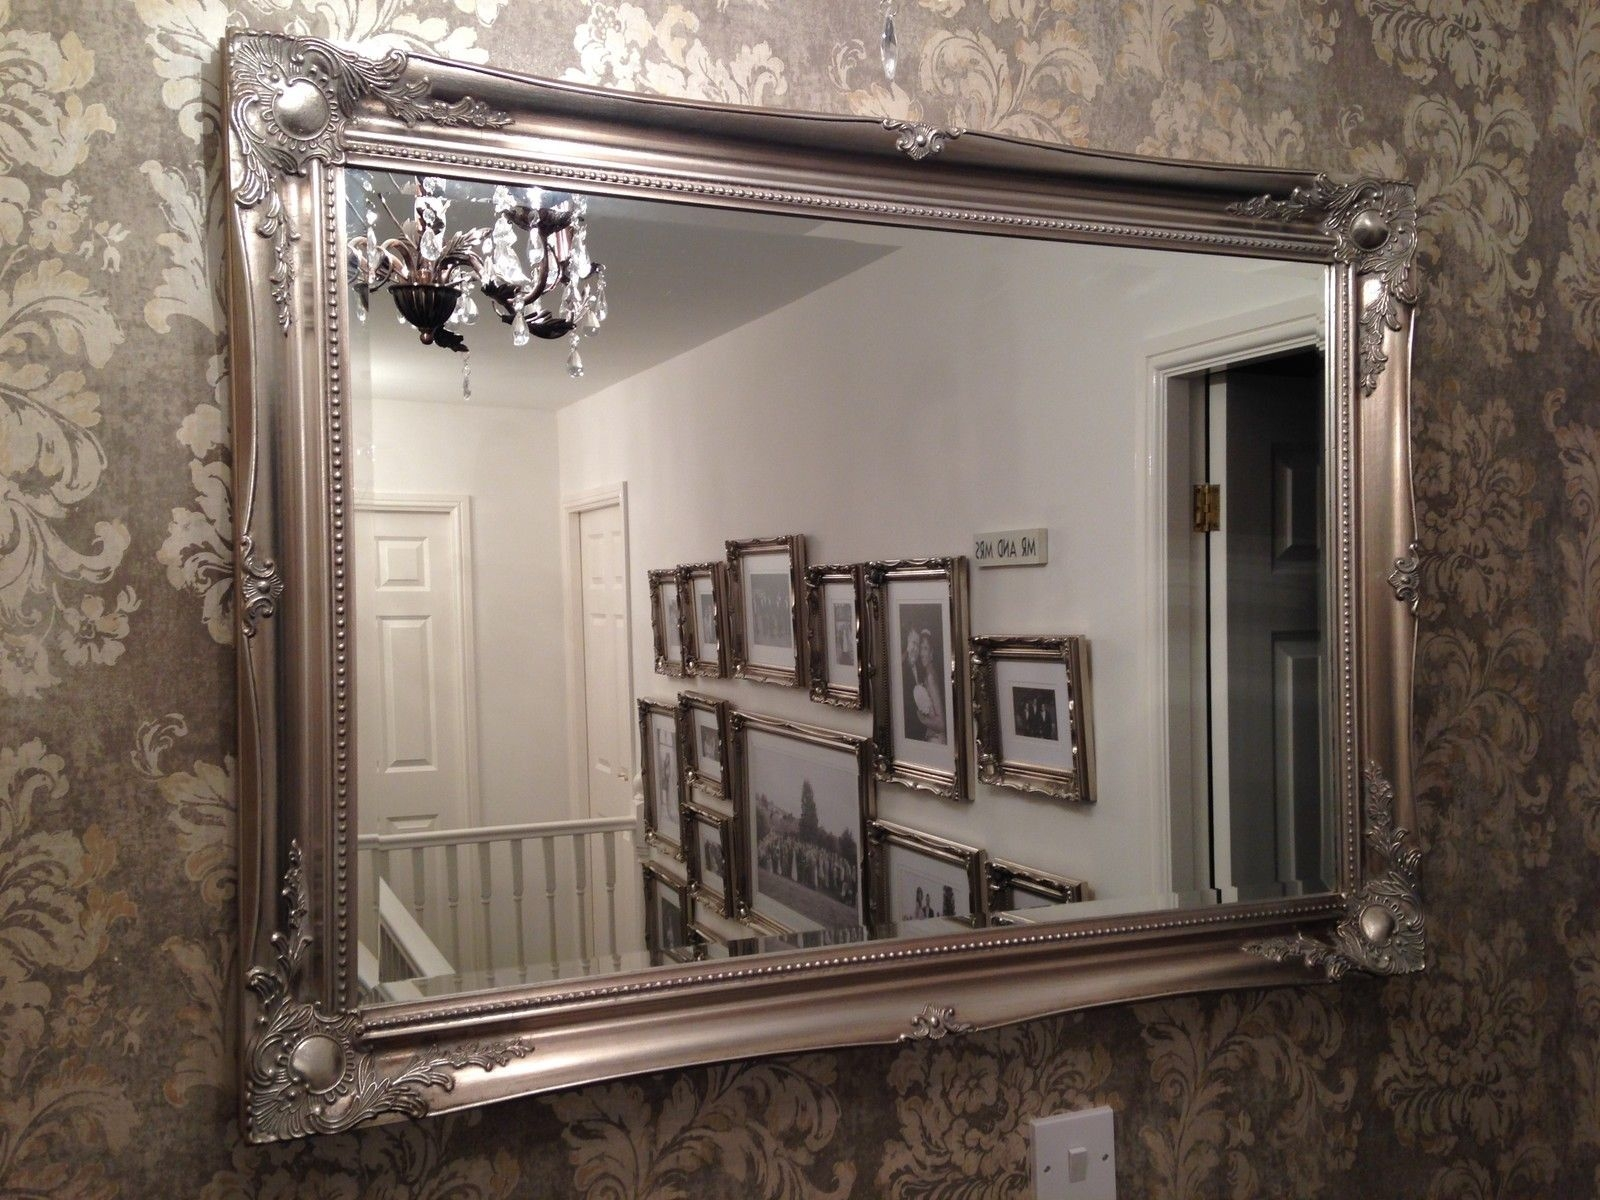 For Sale 20 Large Designer Wall Mirrors On Mirrors Decorative Pertaining To Shabby Chic Mirrors For Sale (Image 4 of 15)